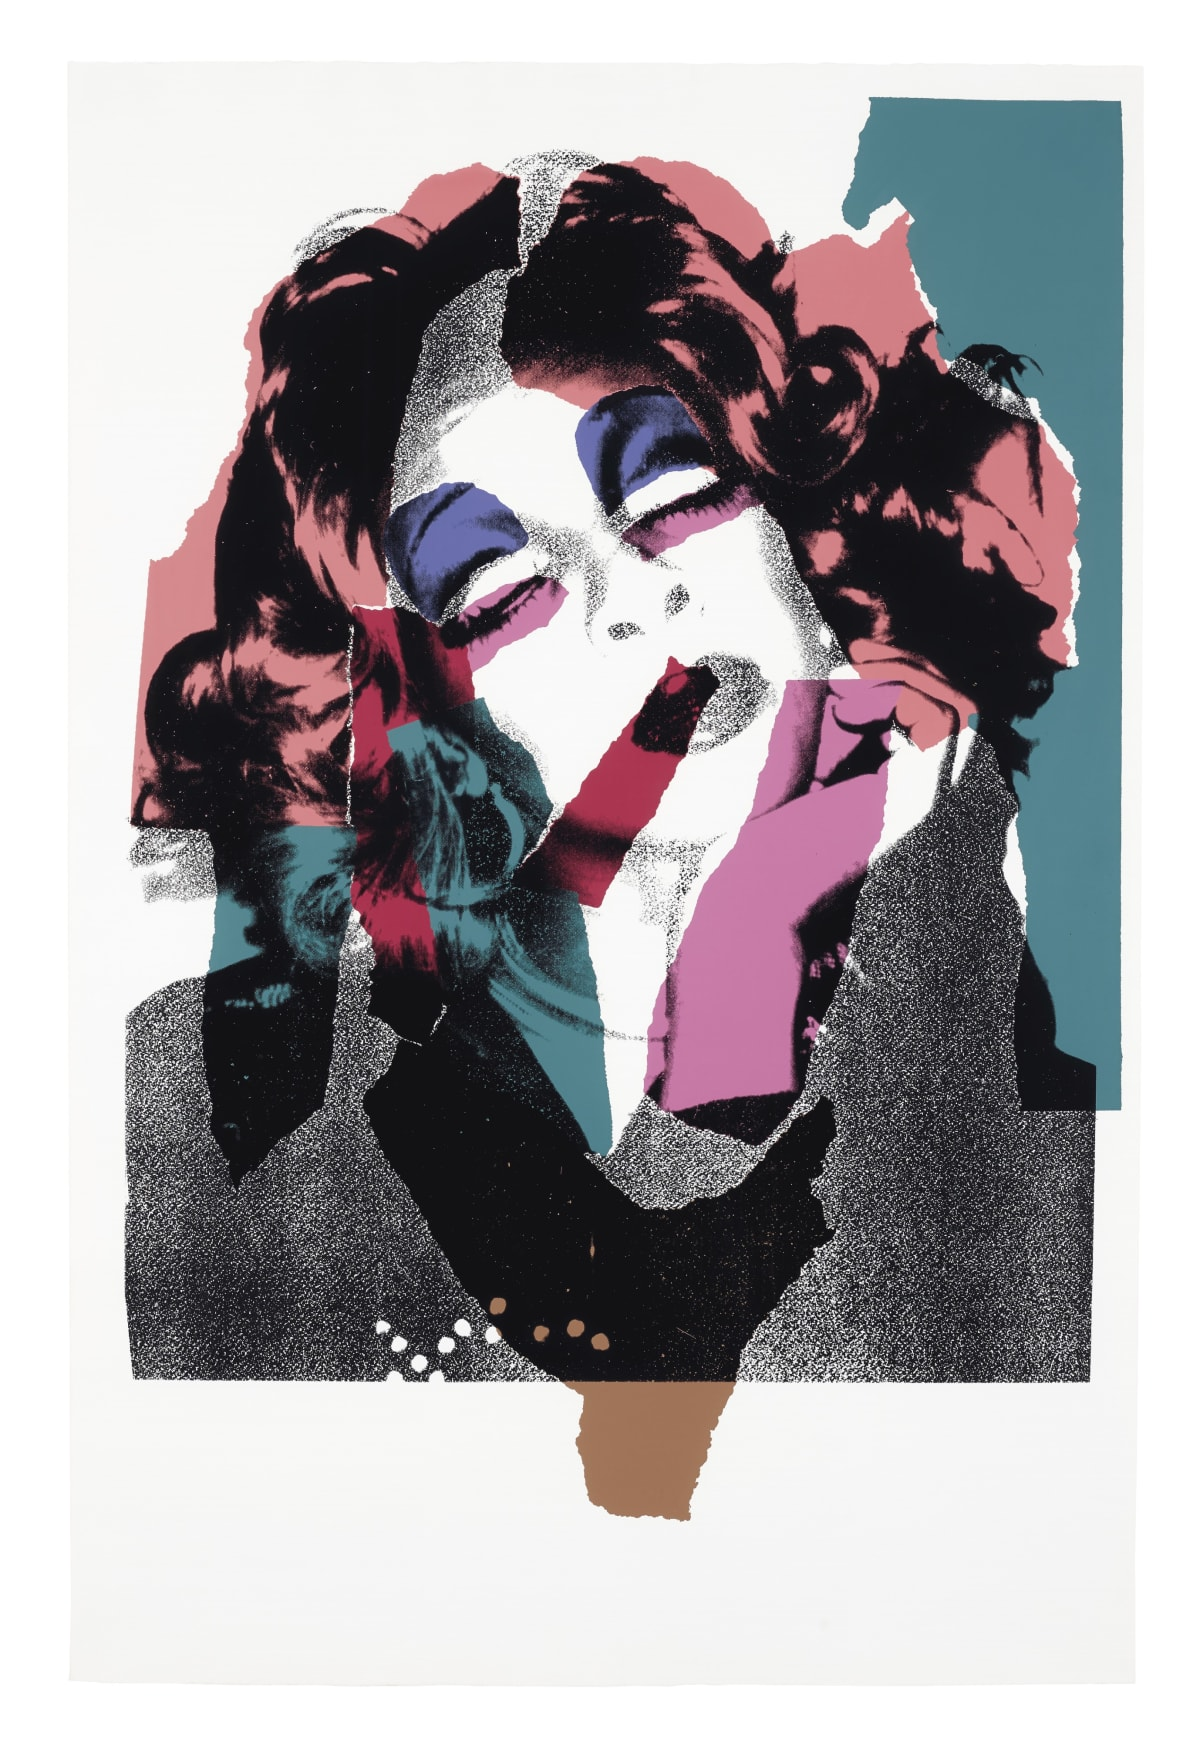 Ladies and Gentlemen, II.128, 1975, by Andy Warhol, Portfolio of Ten Screenprints from an edition of 125, at Coskun Fine Art